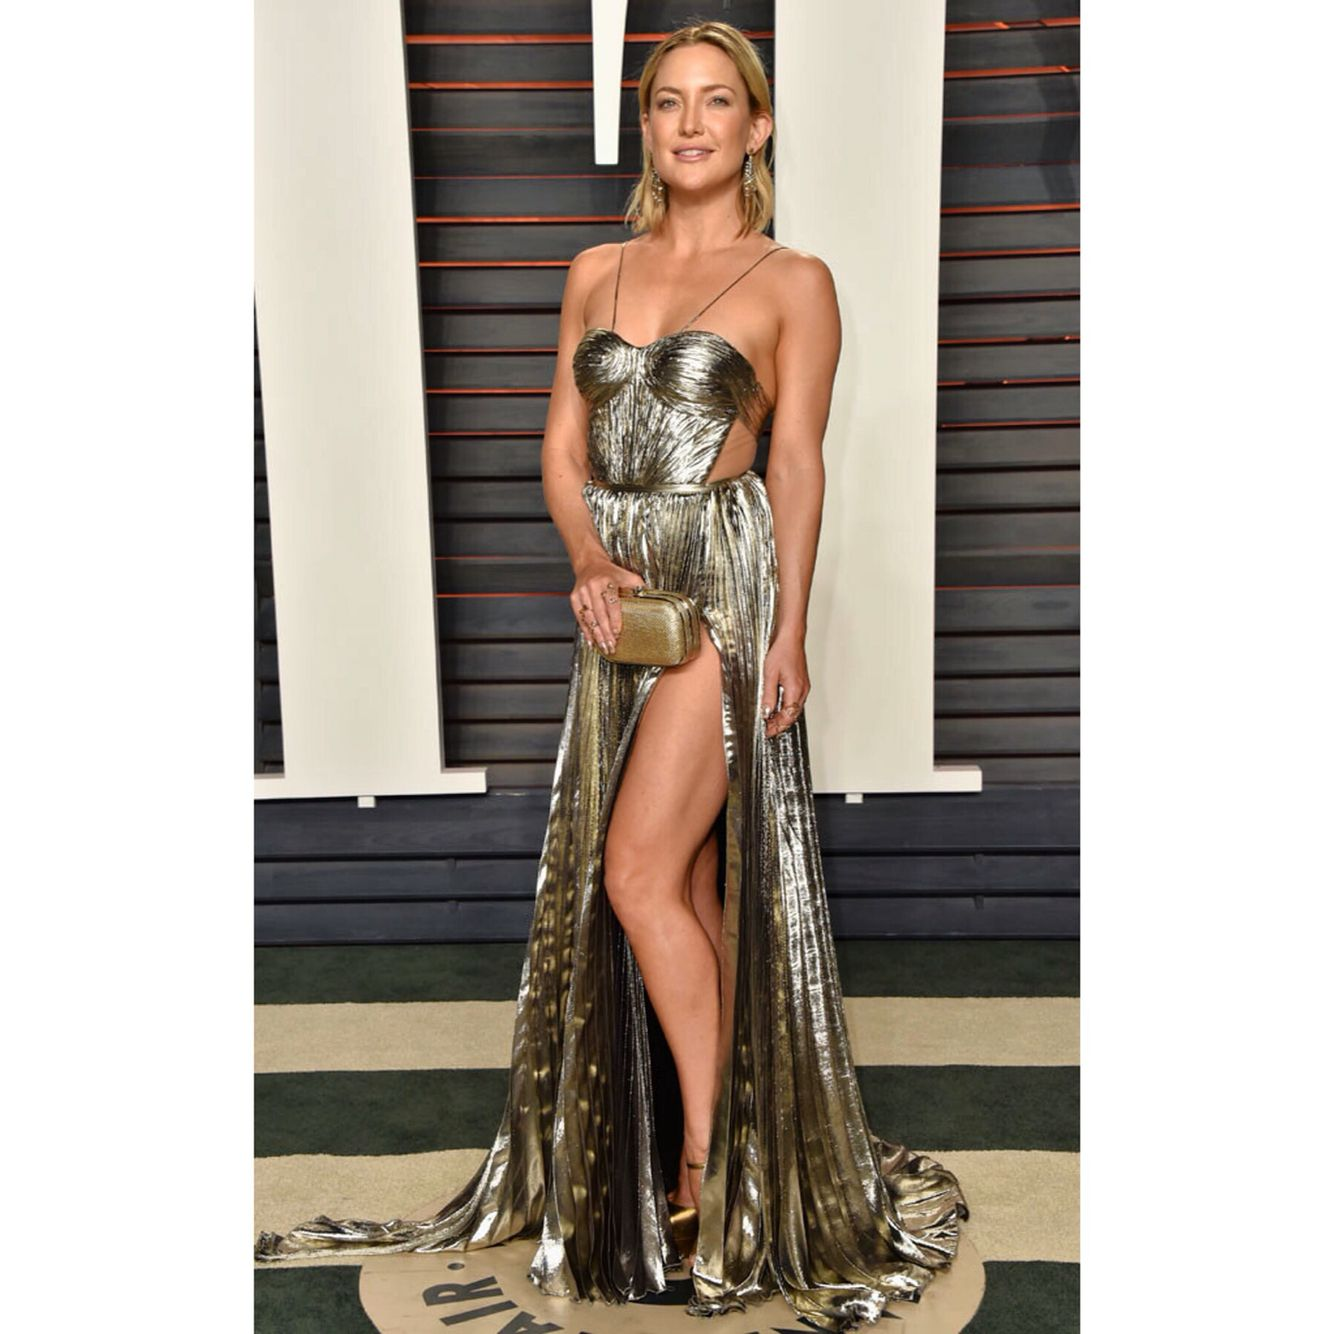 Obsessed! #glamzam #london #monday #katehudson #vanityfairparty2016 #golddress #oscars #hollywood #glam #ootd #fashion #nightout #party #metallicdress